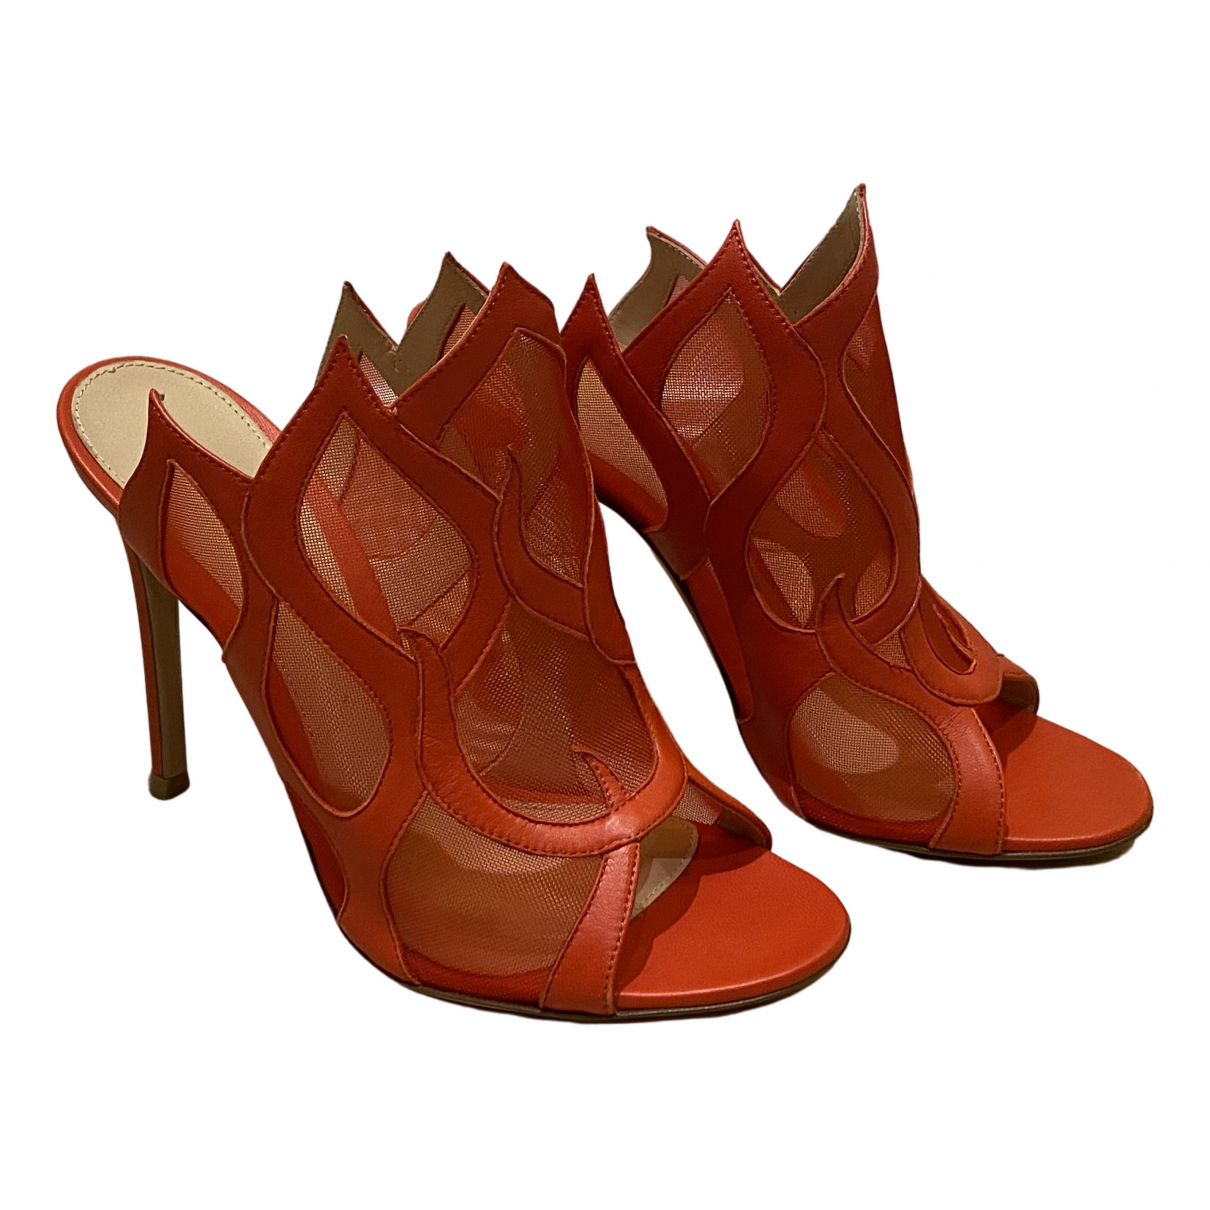 Gianvito Rossi \N Red Leather Sandals for Women 37 EU